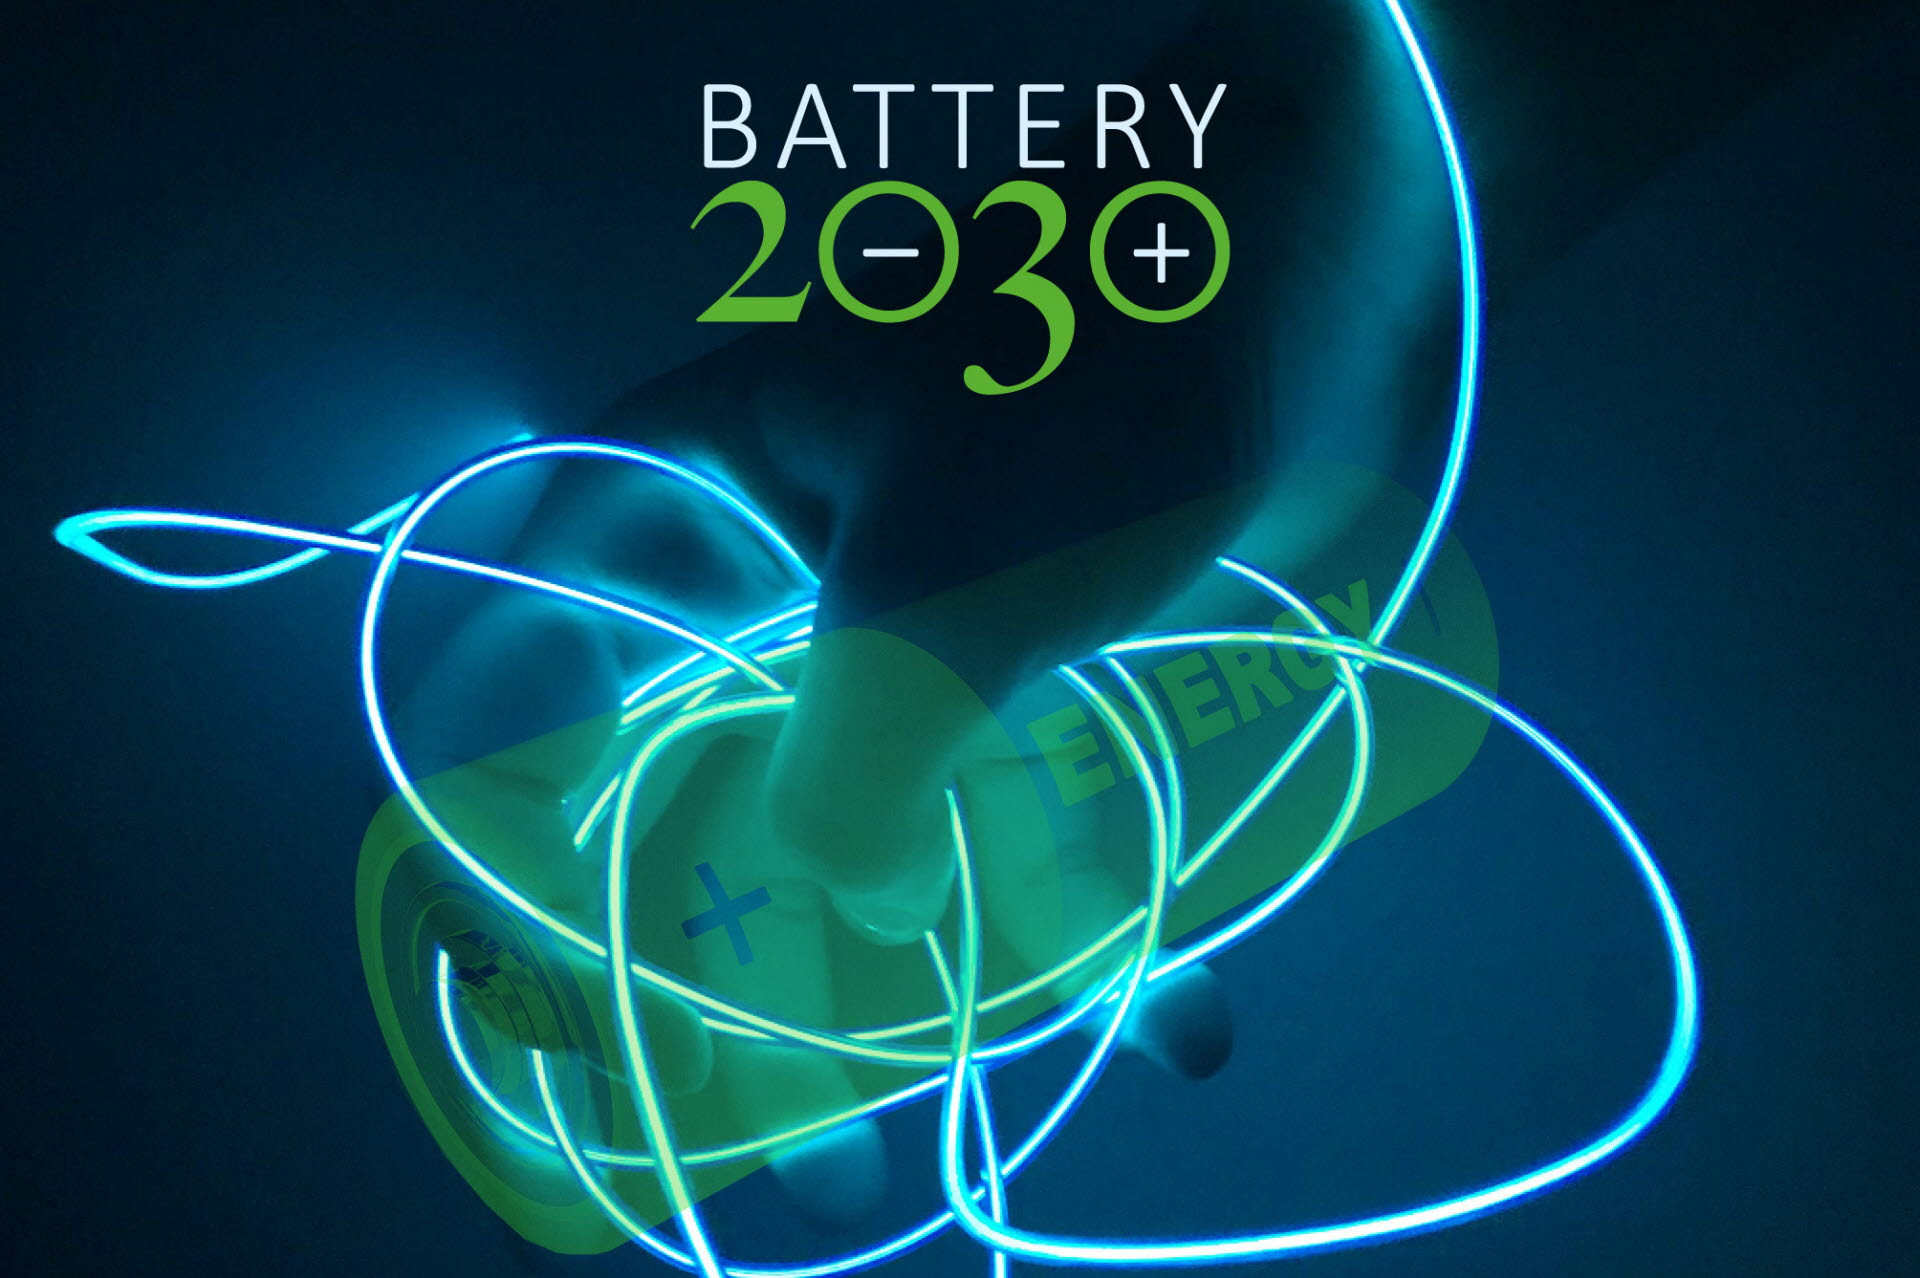 On 20 November over 200 stakeholders from industry and academia had gathered at Vrije University in Brussels to discuss the BATTERY 2030+ roadmap draft